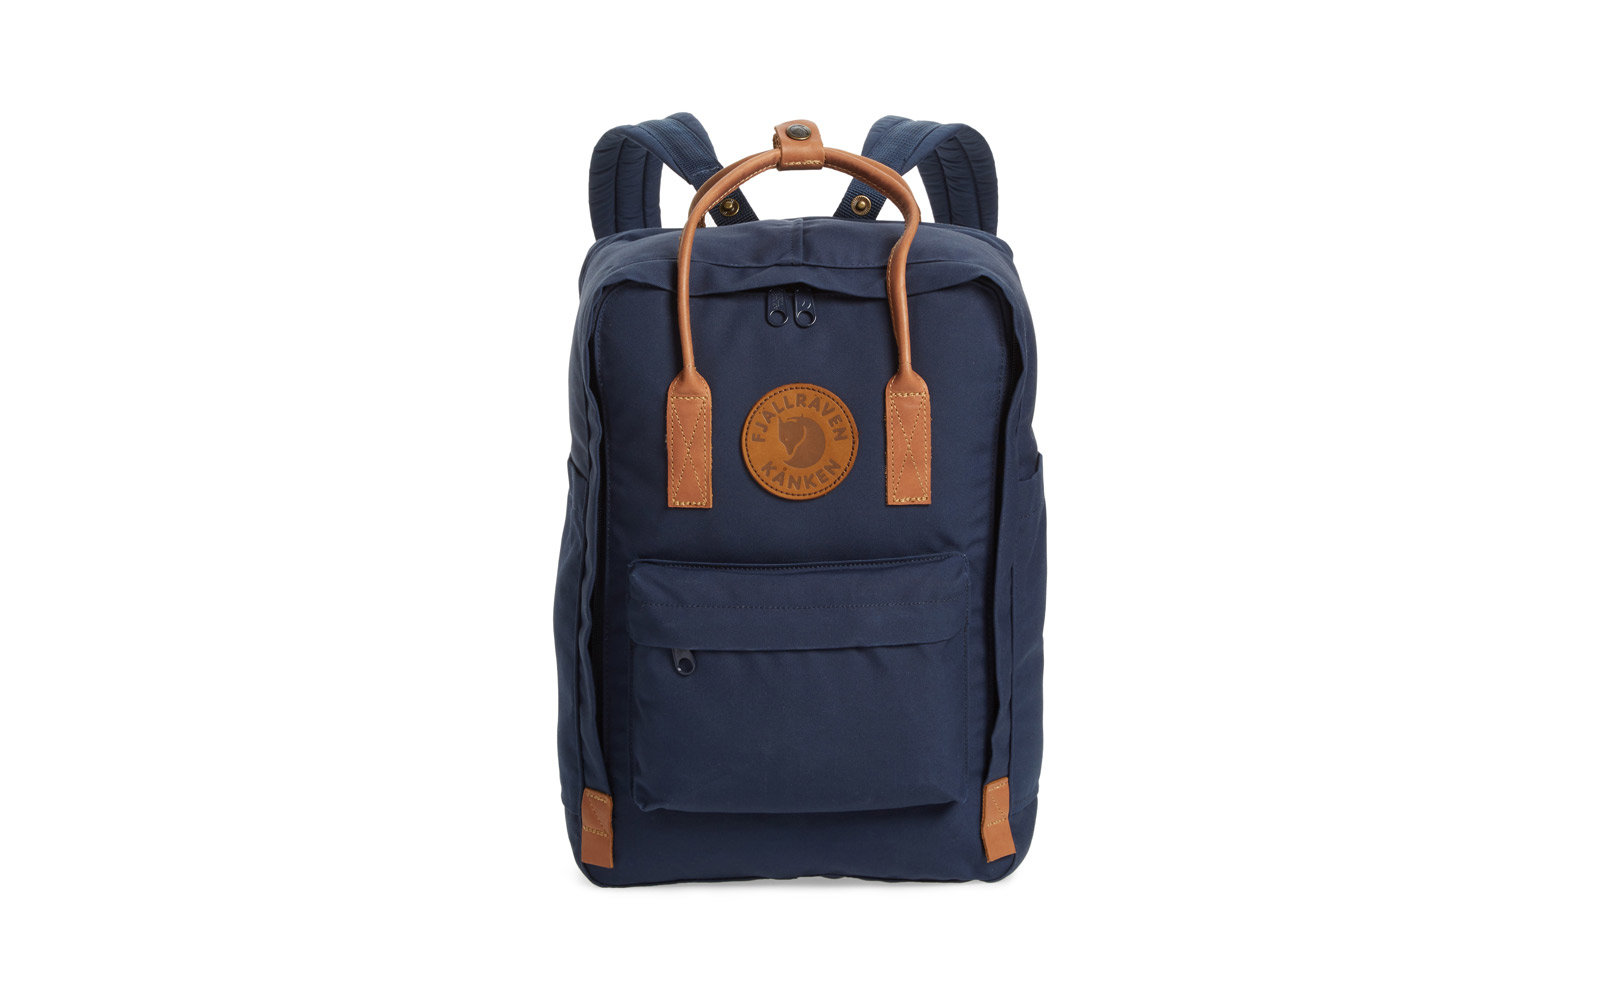 fjallraven waterproof laptop backpack c093986b0f38e